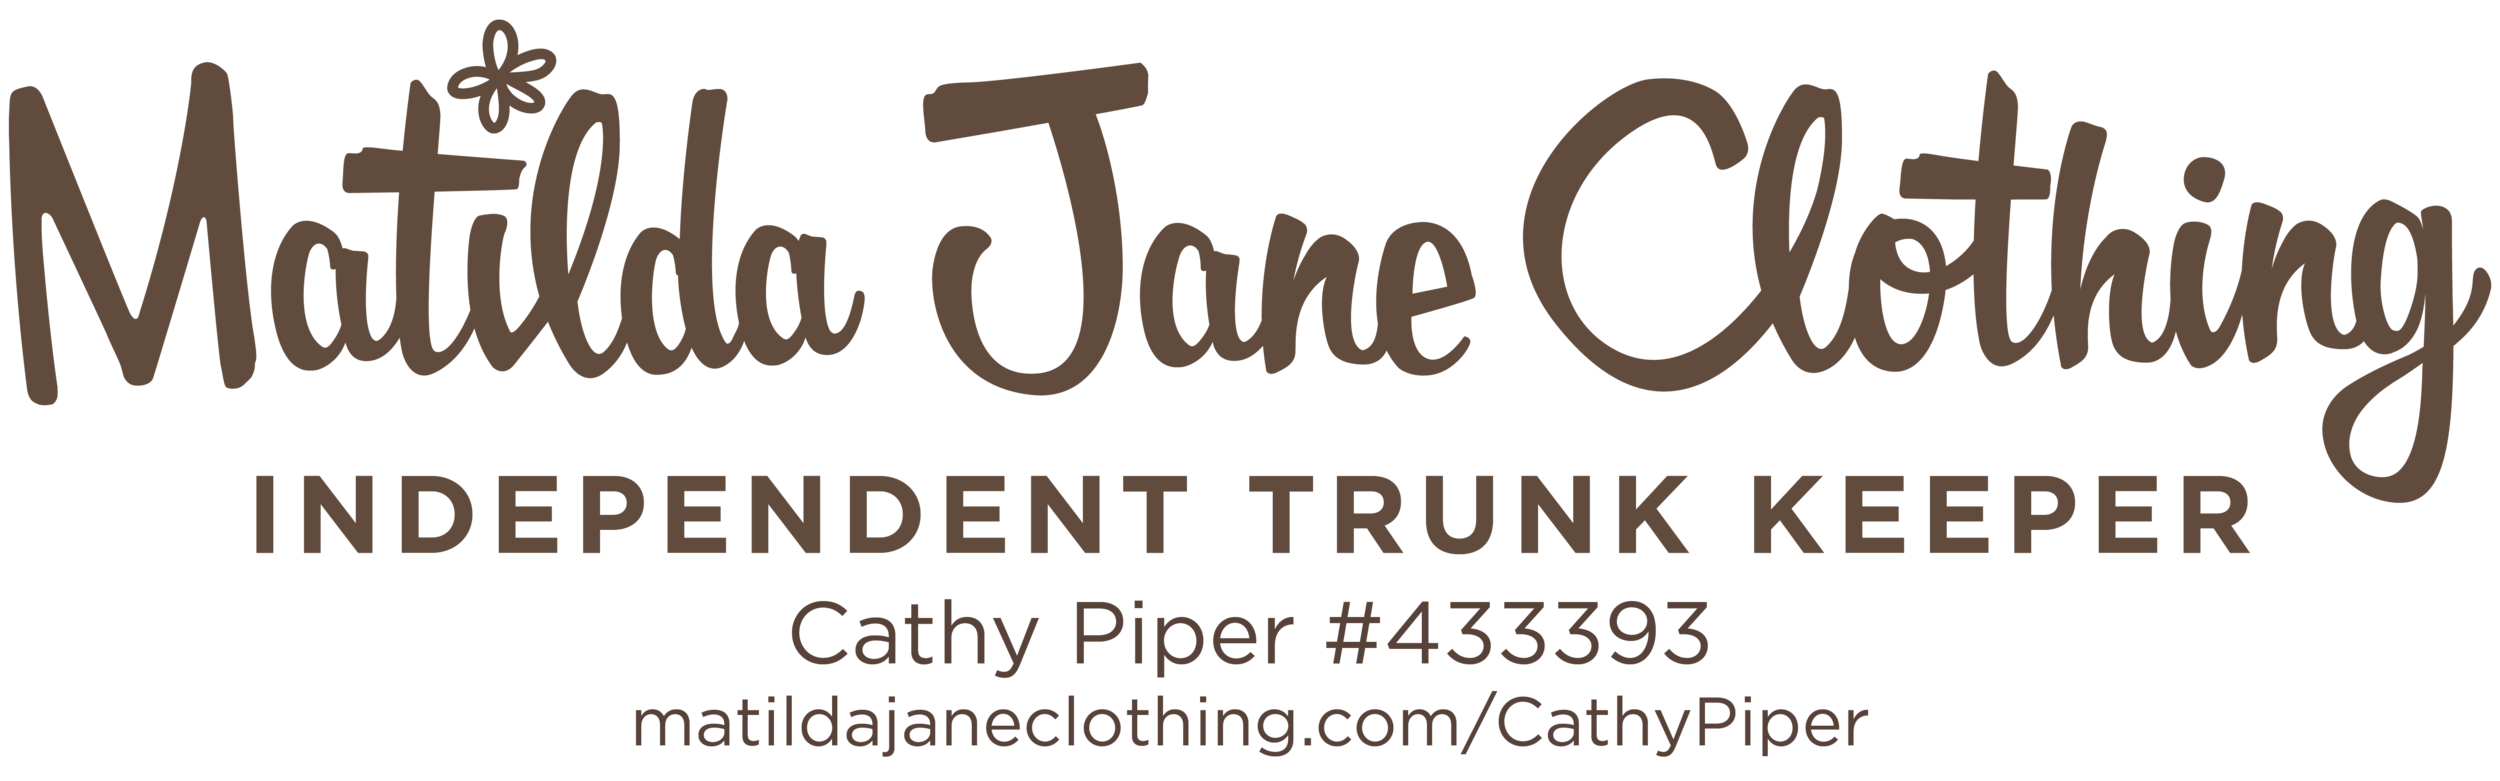 MJClothing CATHY PIPER logo.png